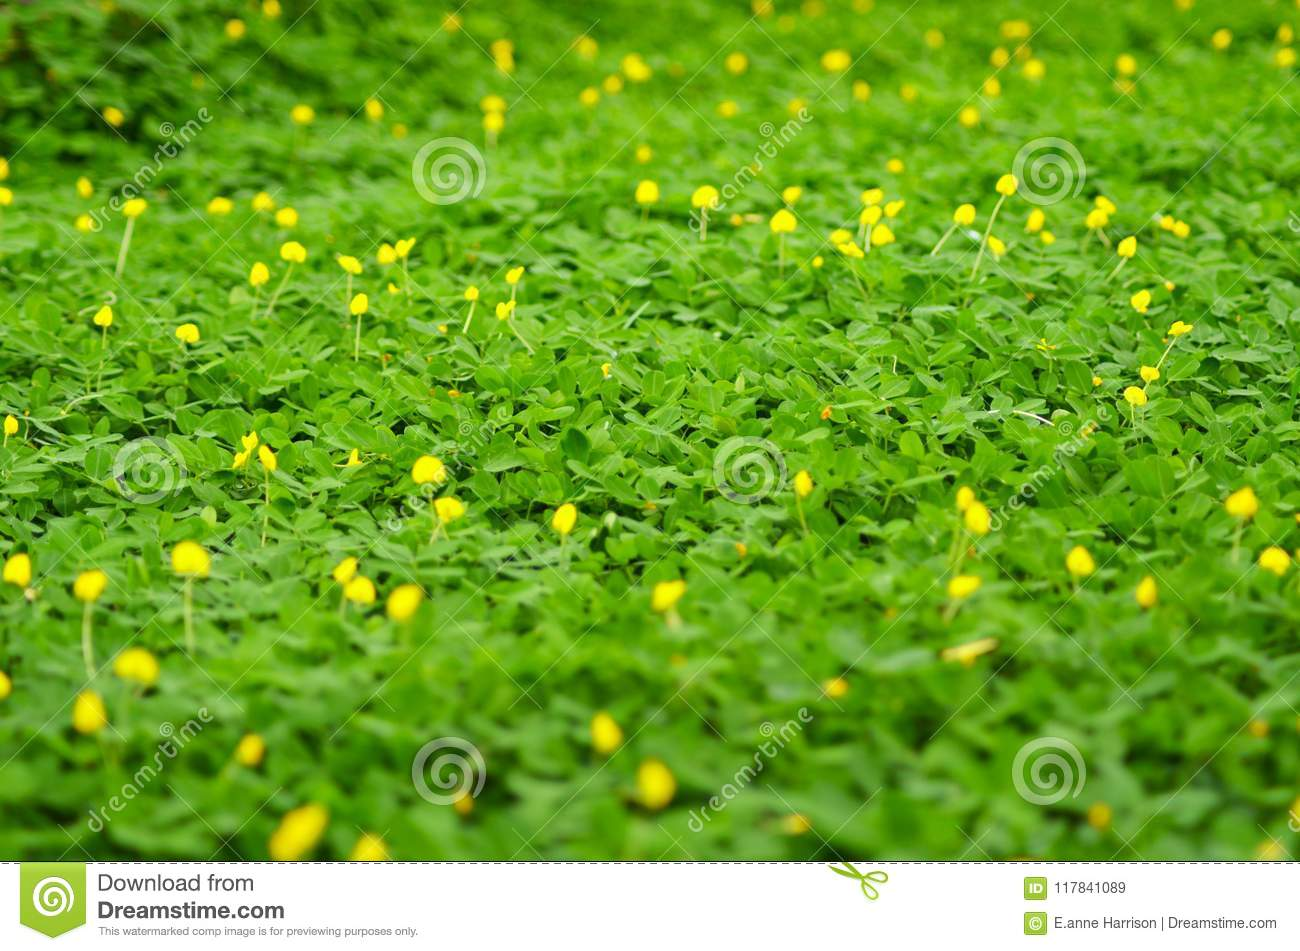 A Patch Of Green Plants Covering A Meadow With Small Yellow Flowers